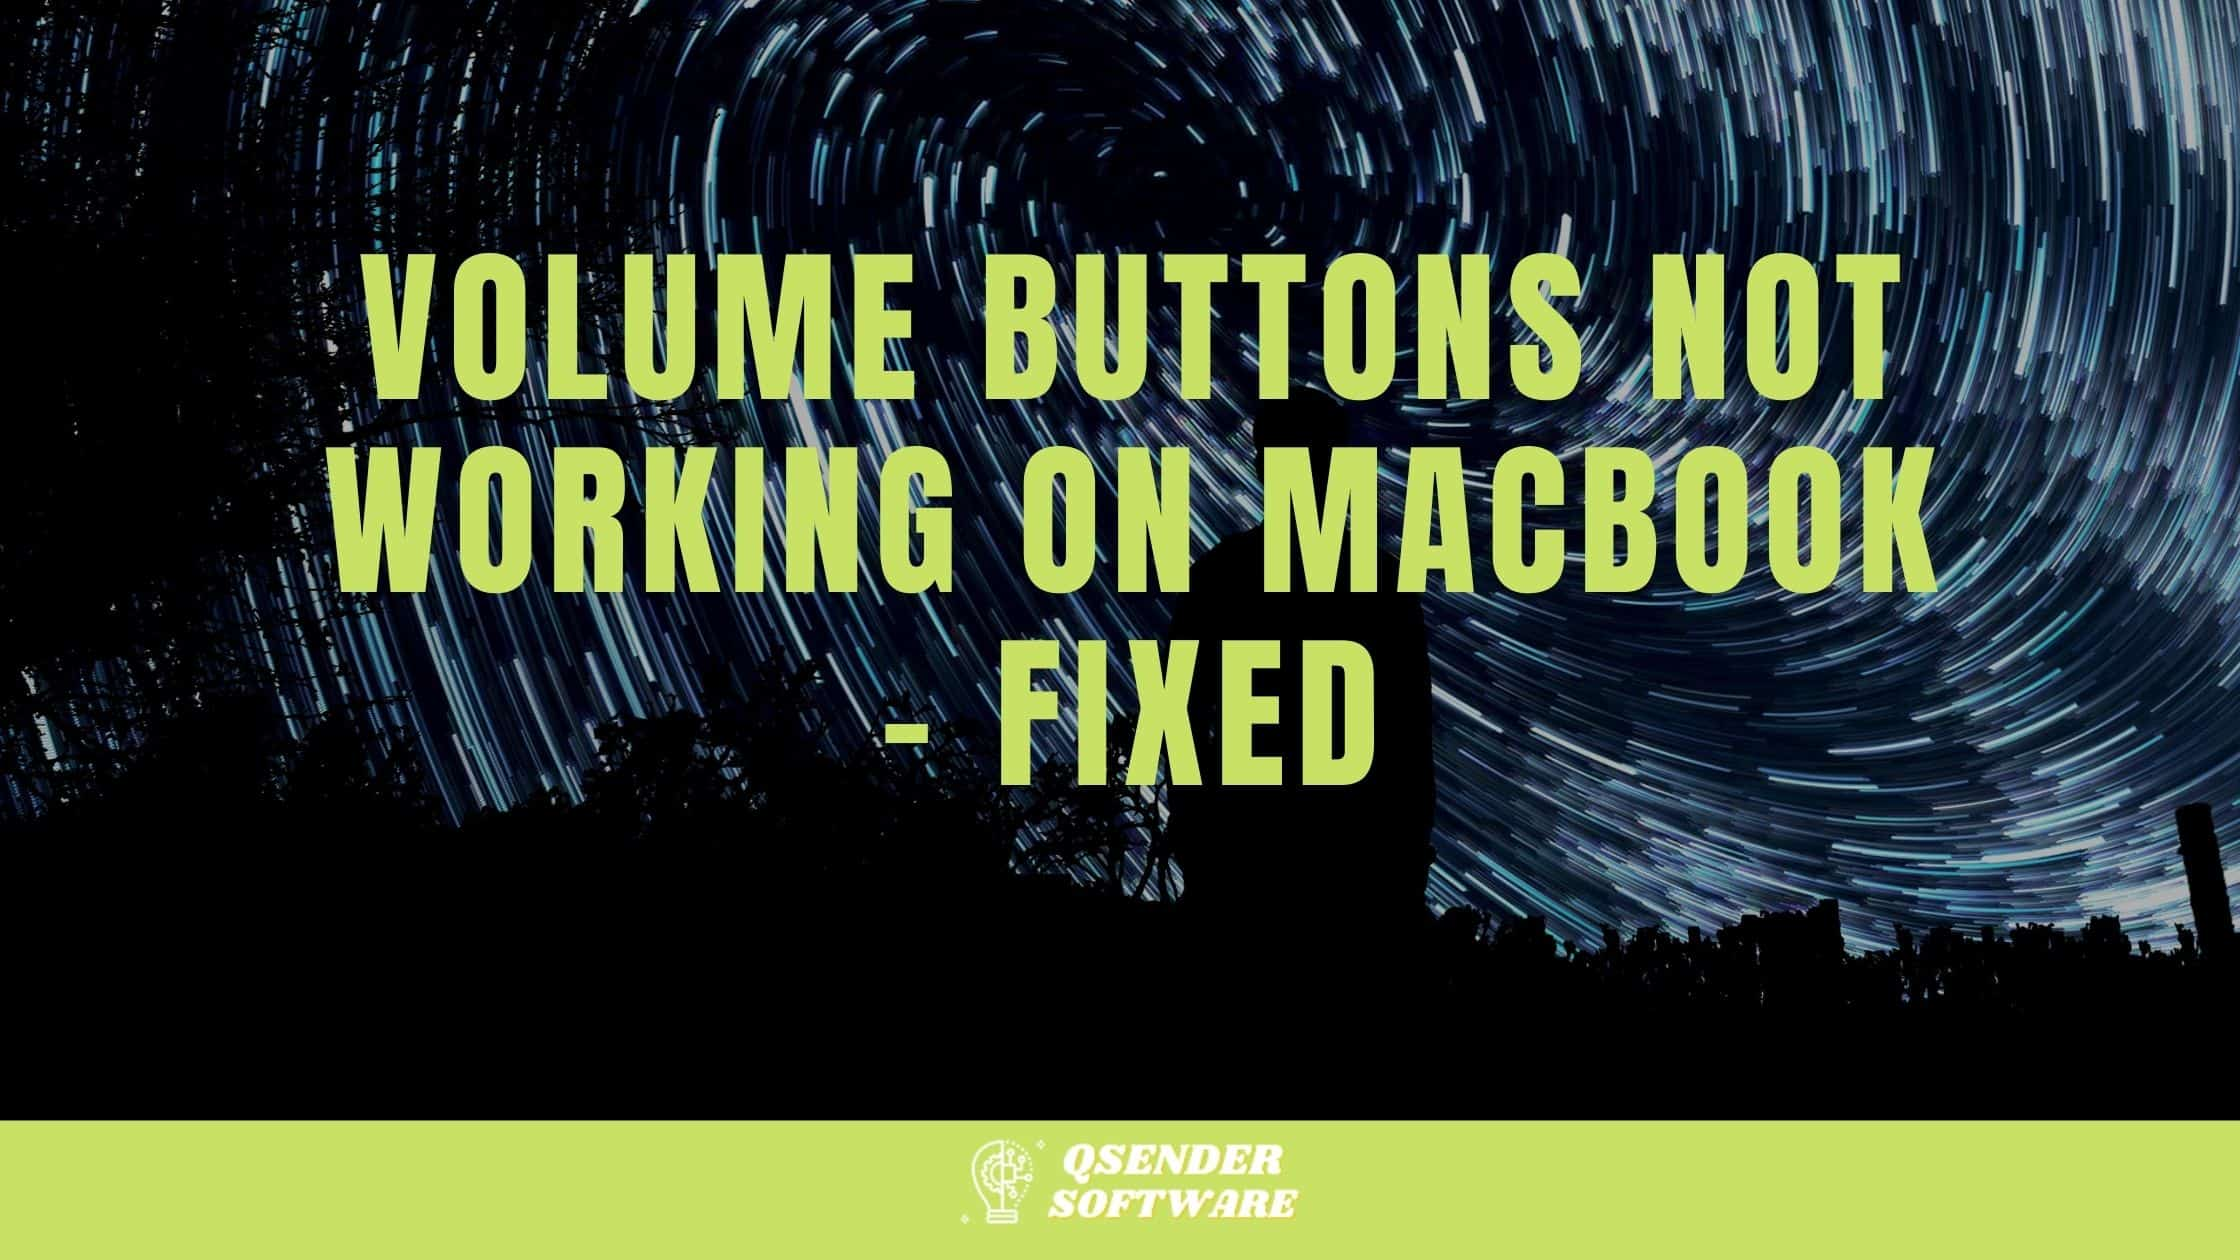 Volume Buttons Not Working On Macbook – Fixed